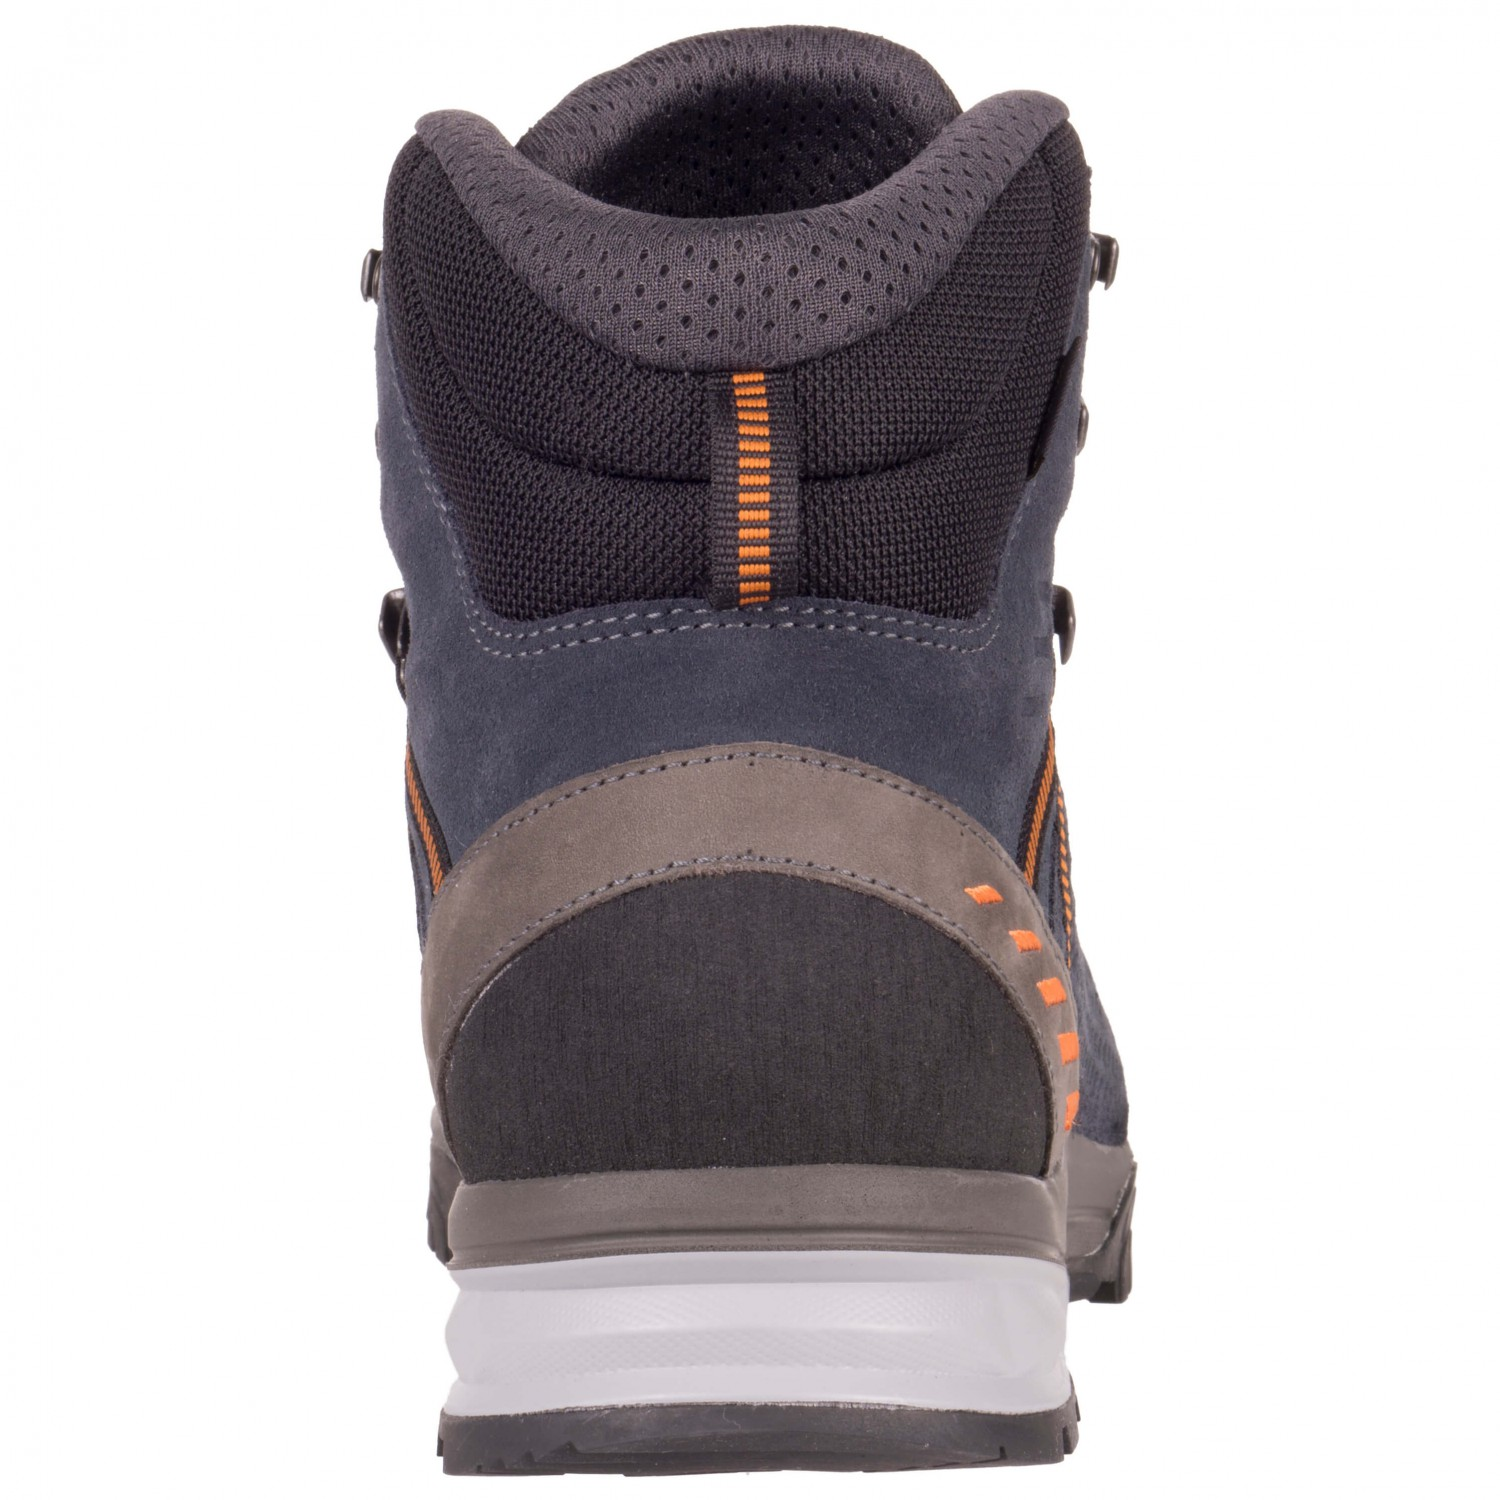 Mid Ledro Gtx Navy Orange7 Regularuk Lowa Wanderschuhe AL43Rj5